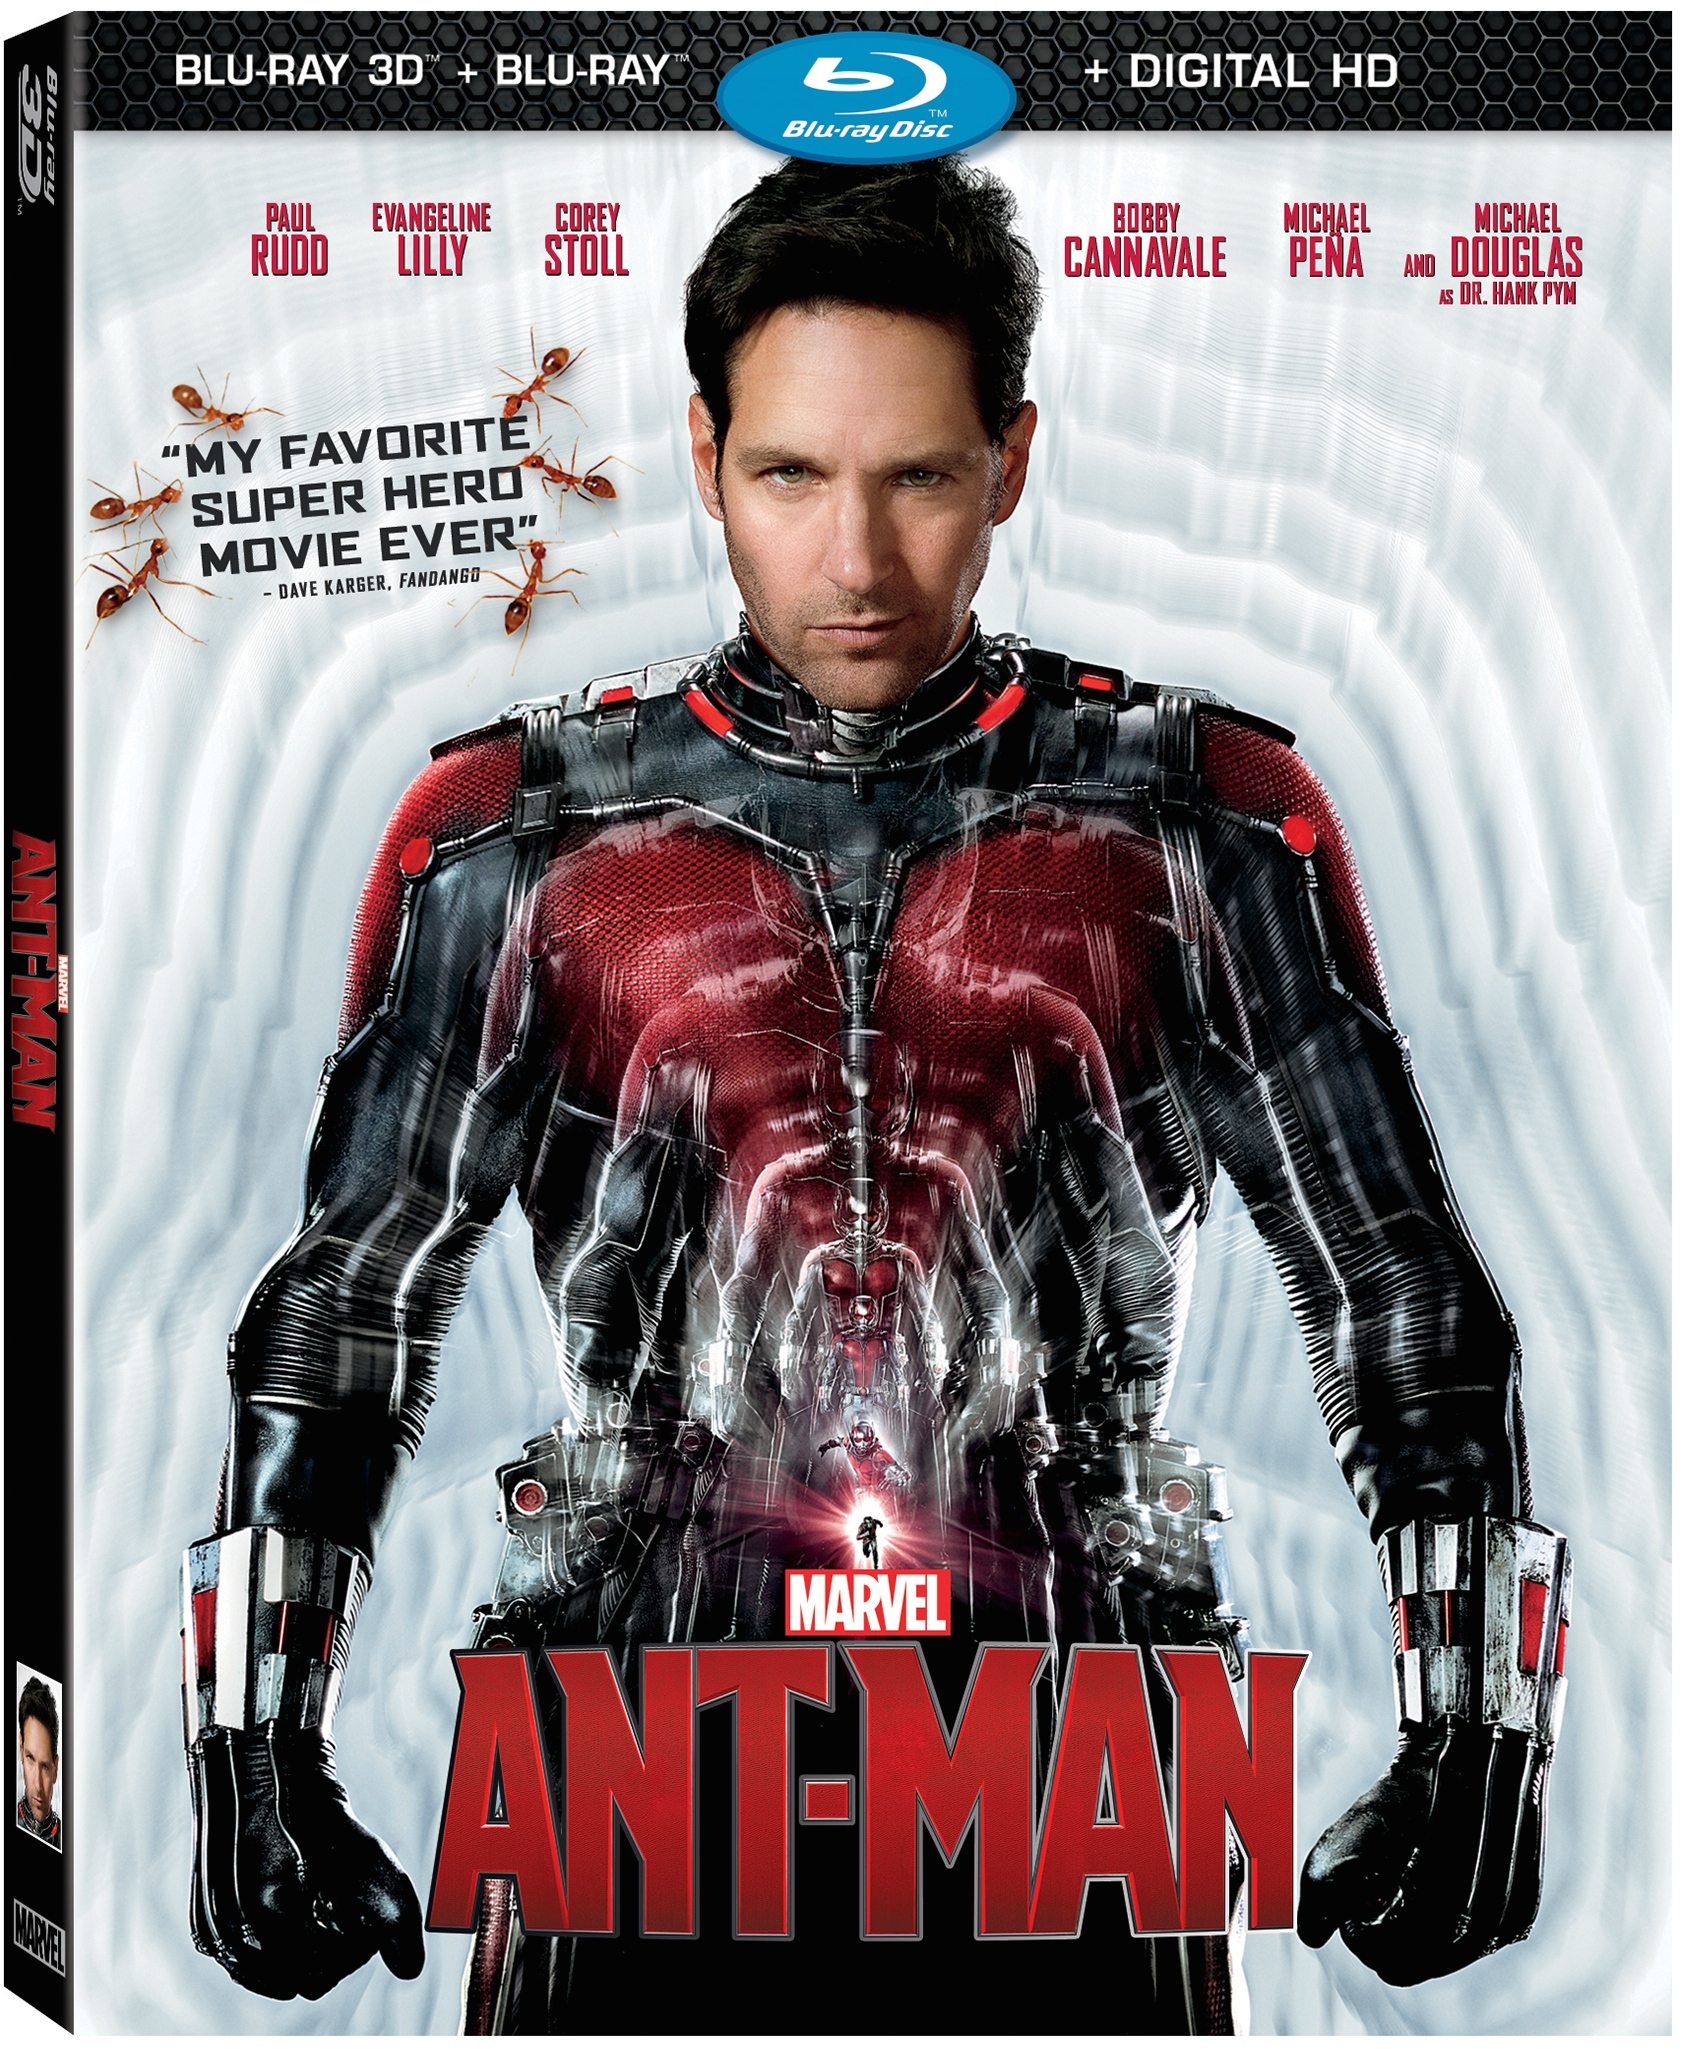 Marvel's Ant-Man Soon Available for Digital Download, Blu-Ray, and DVD!